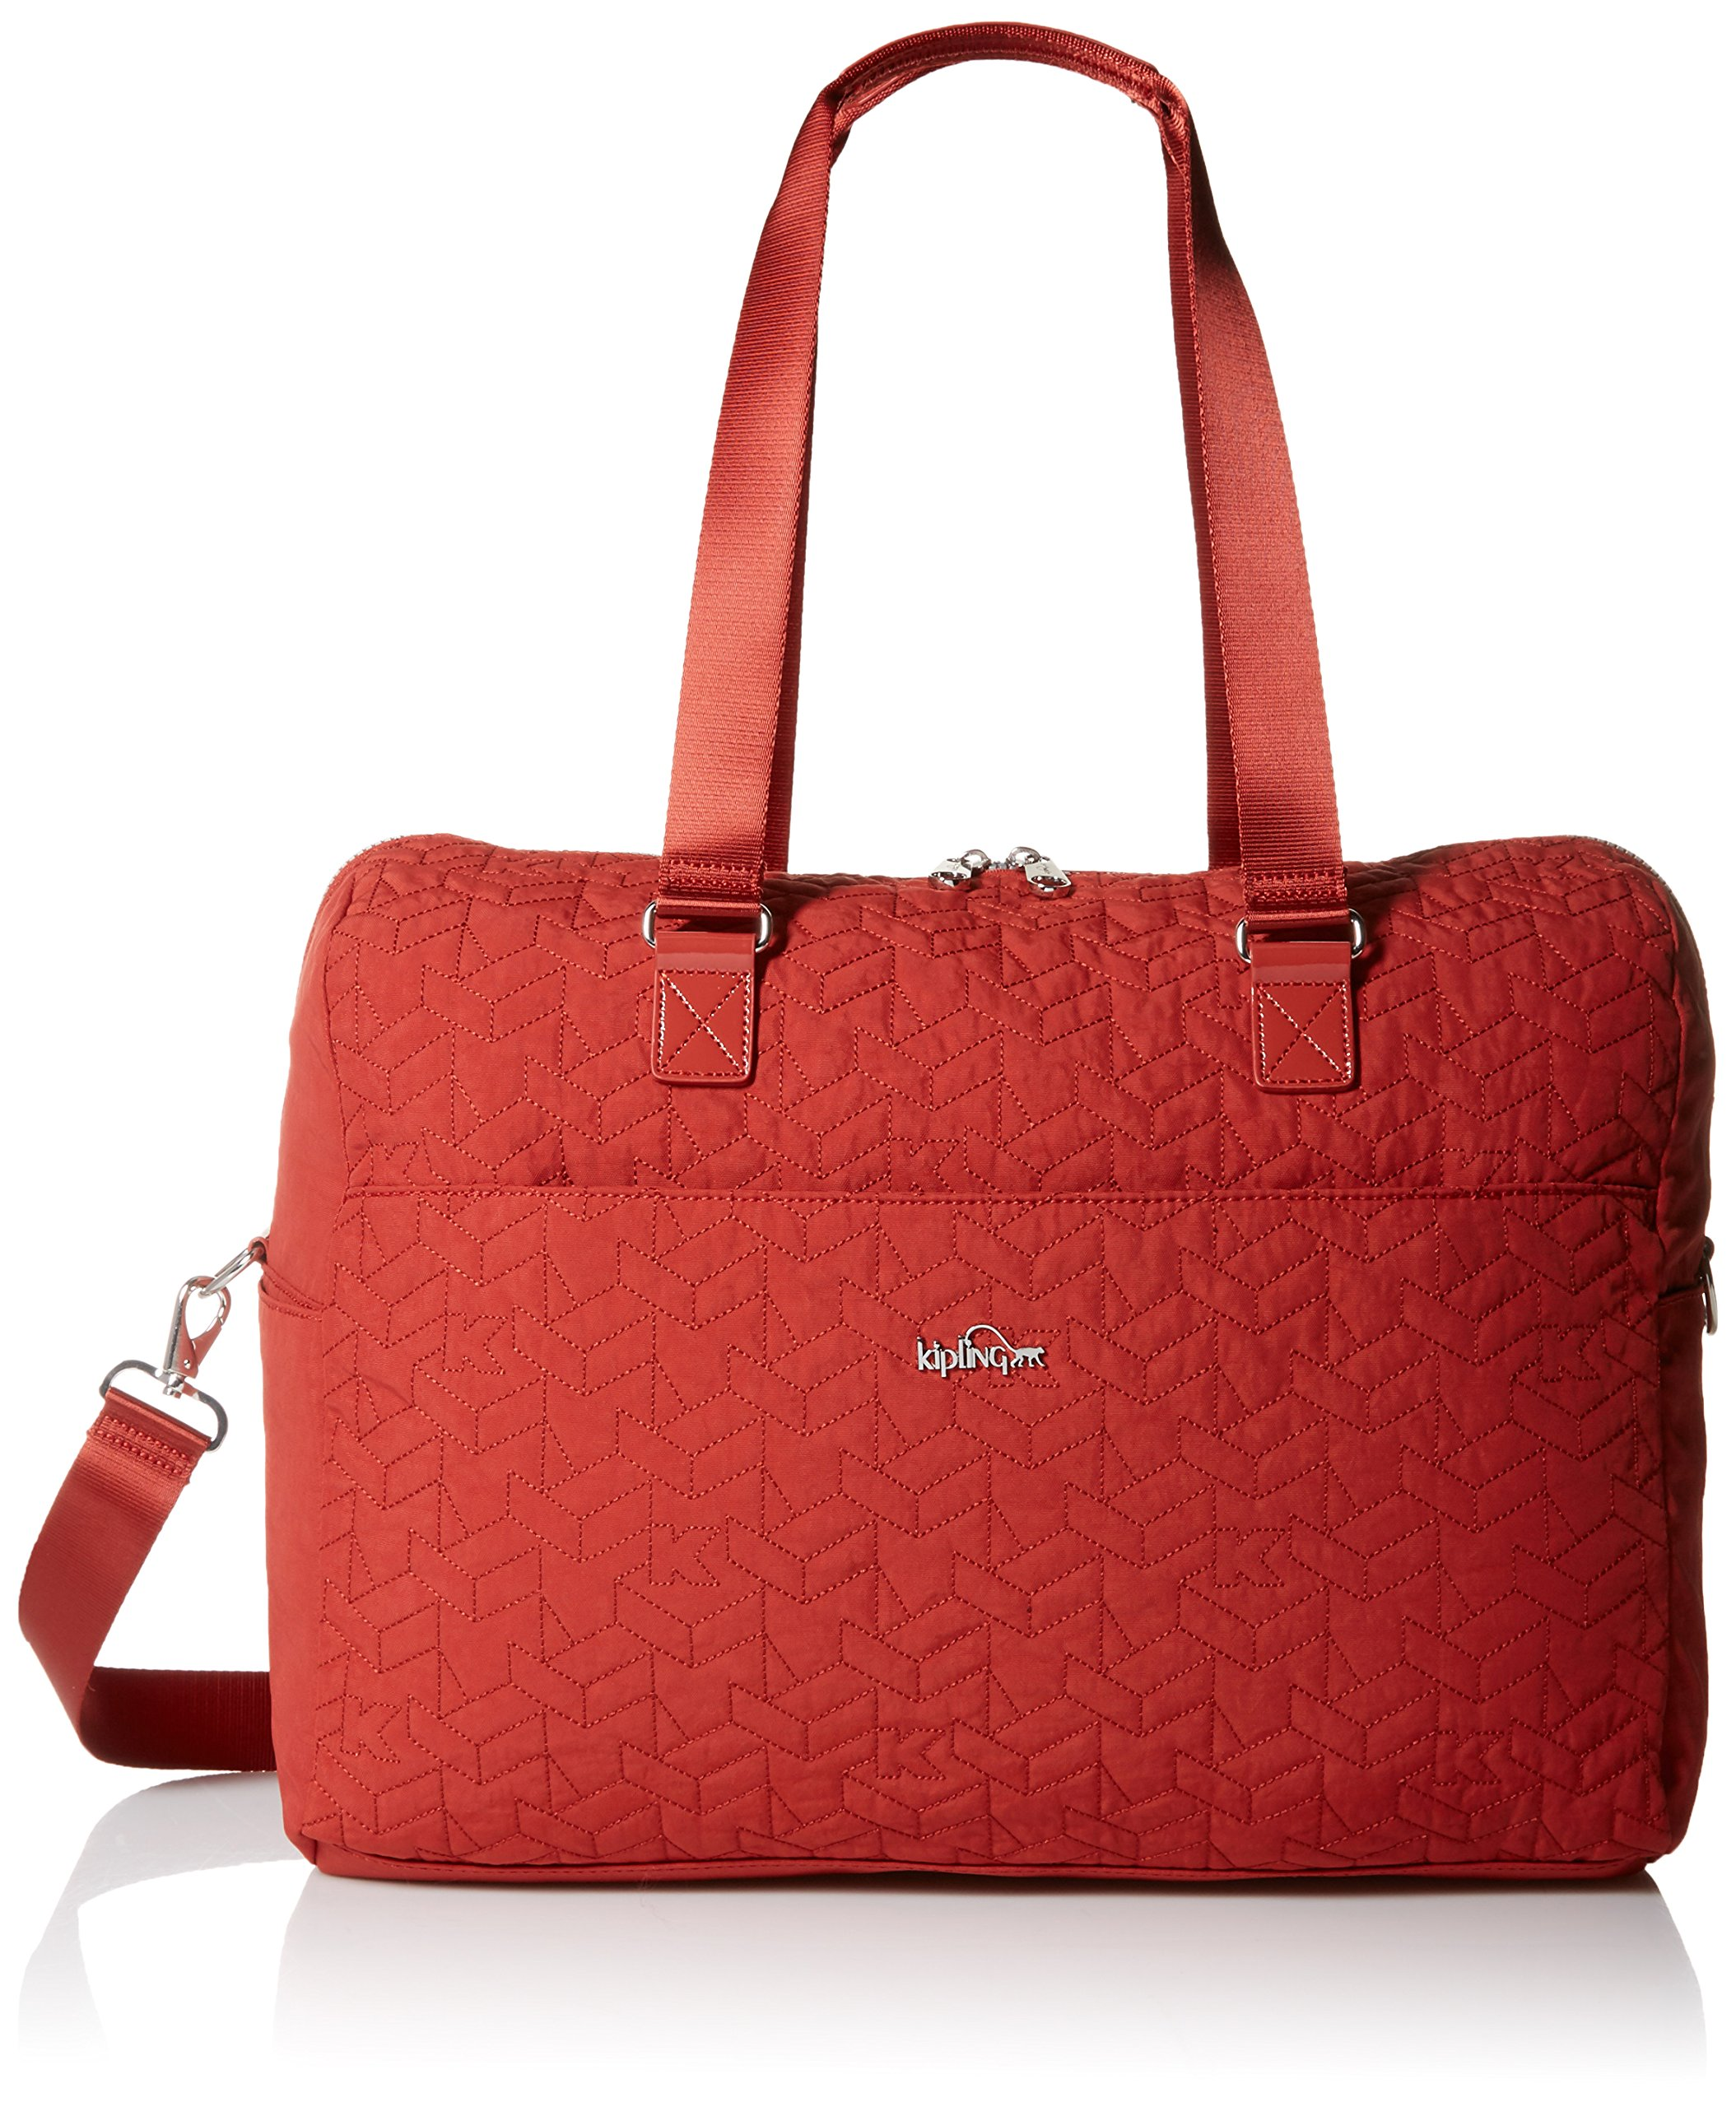 Kipling Women's Sasso Quilted Duffle Bag by Kipling